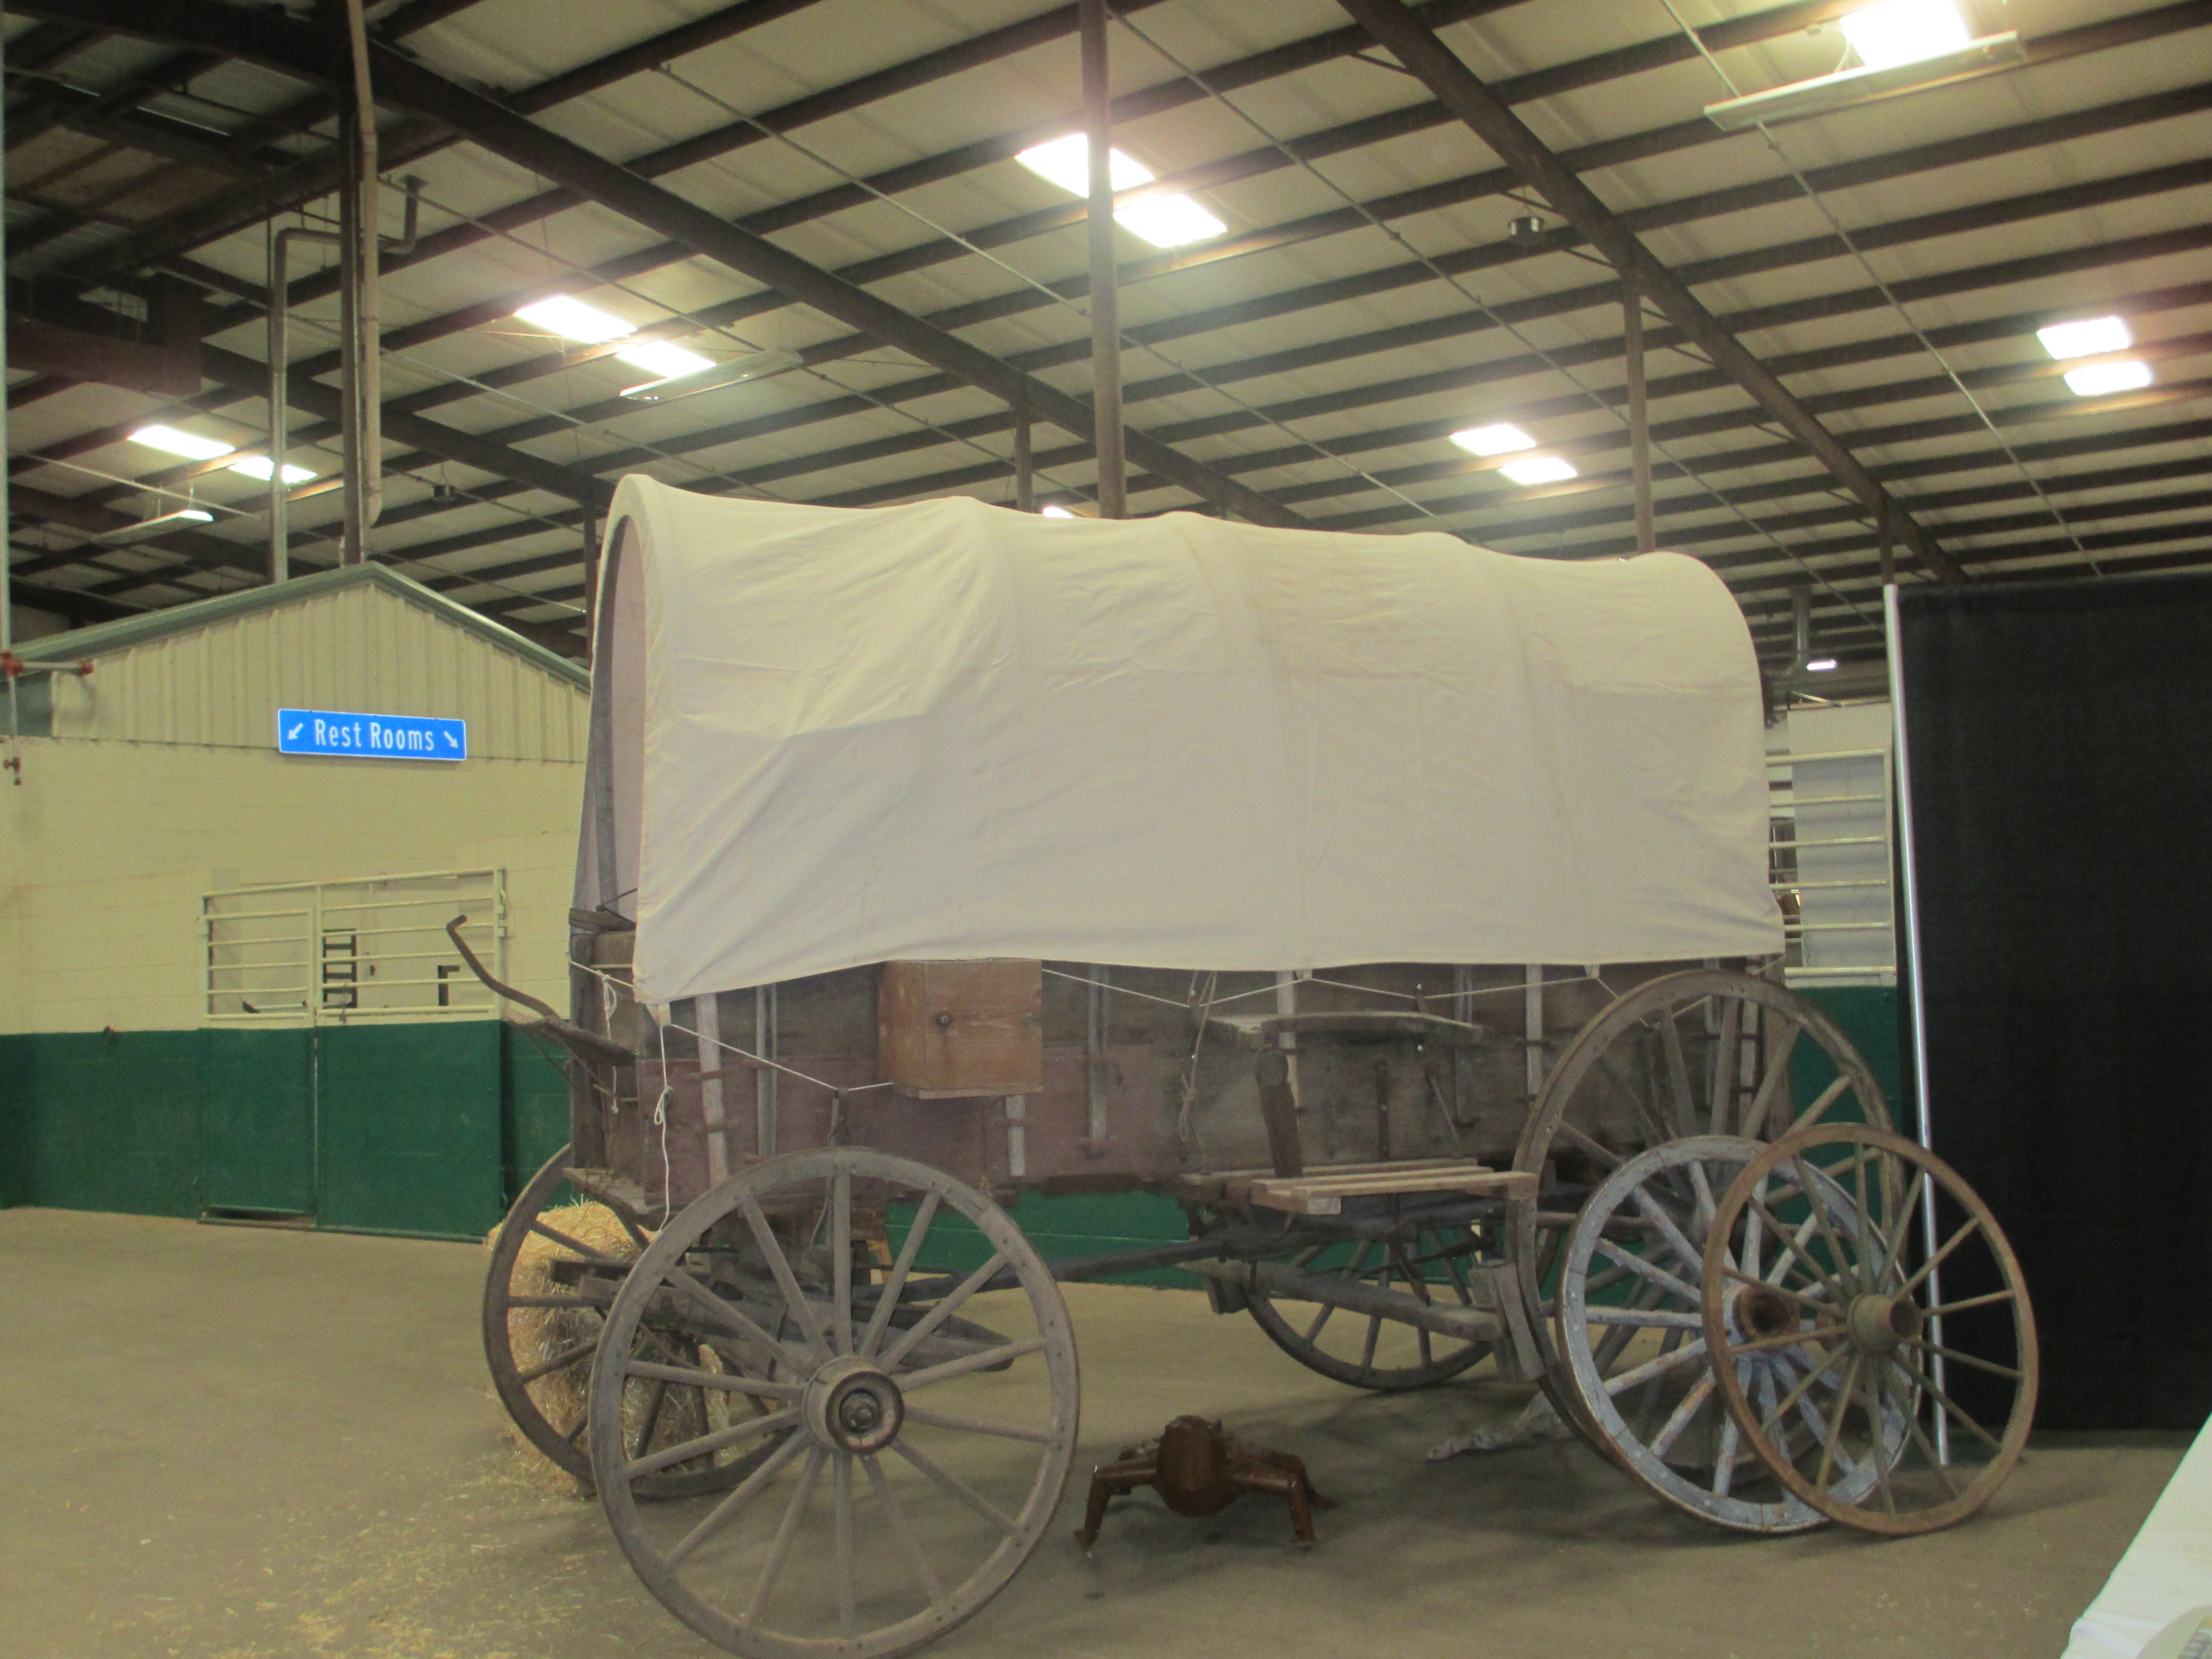 File:Covered wagon at Cowboy True observance, Wichita Falls, TX IMG ...